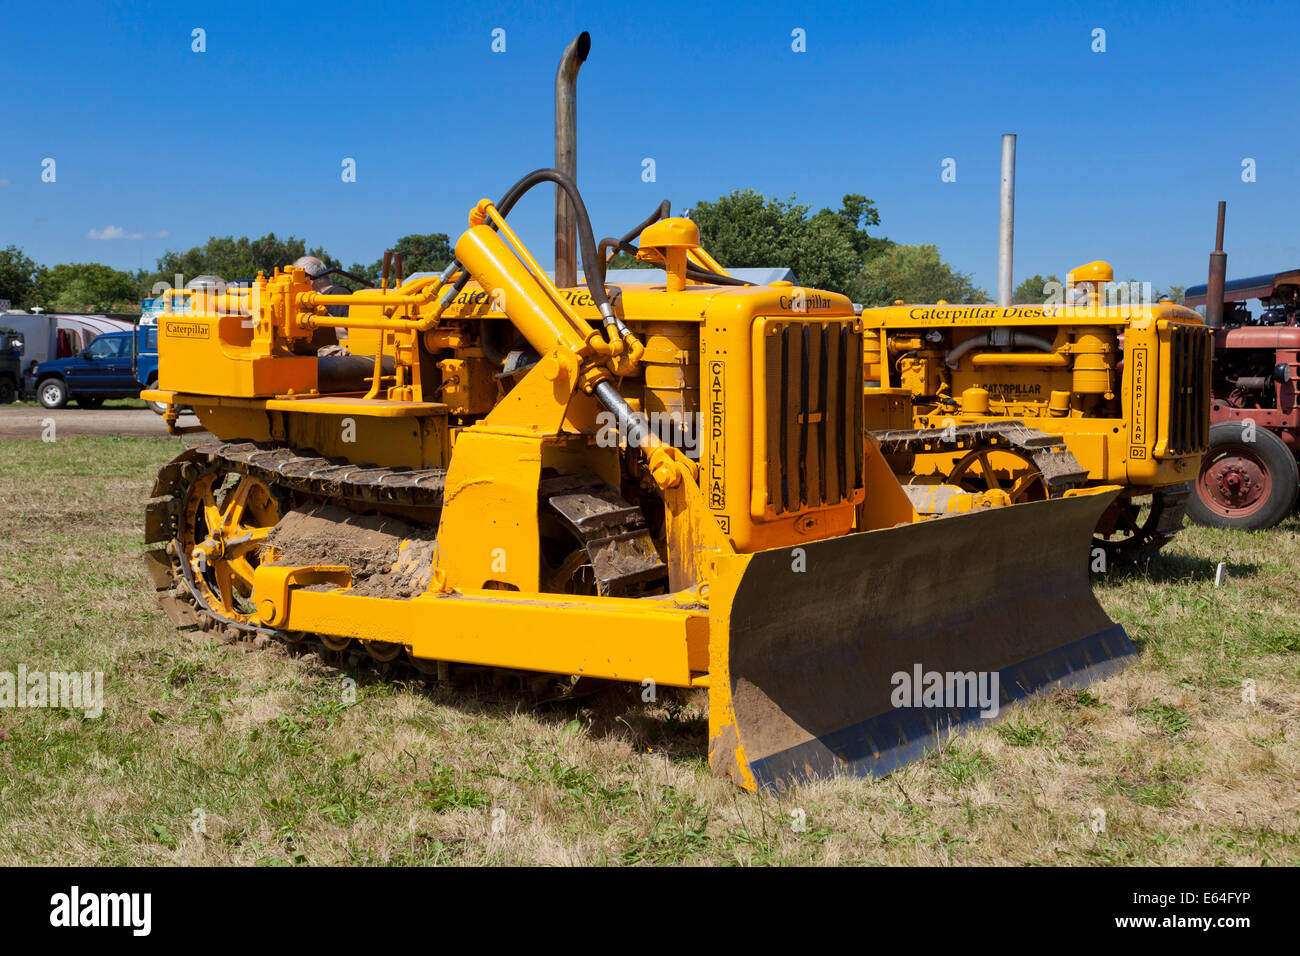 Caterpillar Bulldozer Stock Photos & Caterpillar Bulldozer Stock